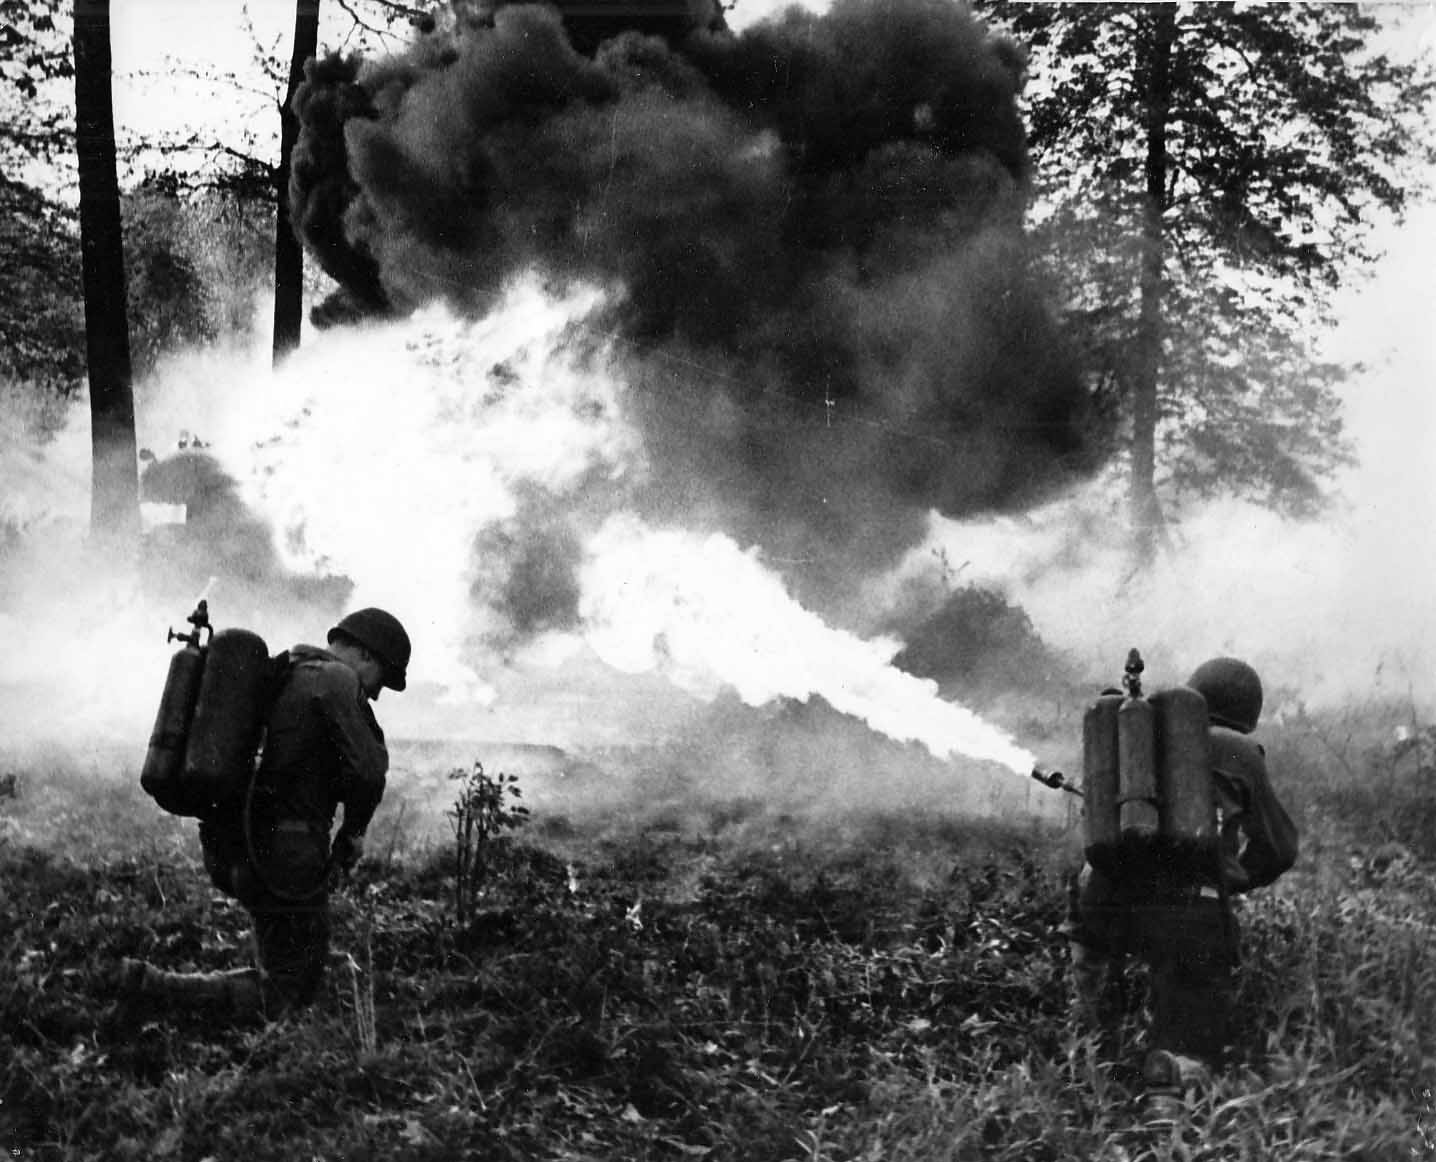 Flame throwers training in England before D-Day 1944